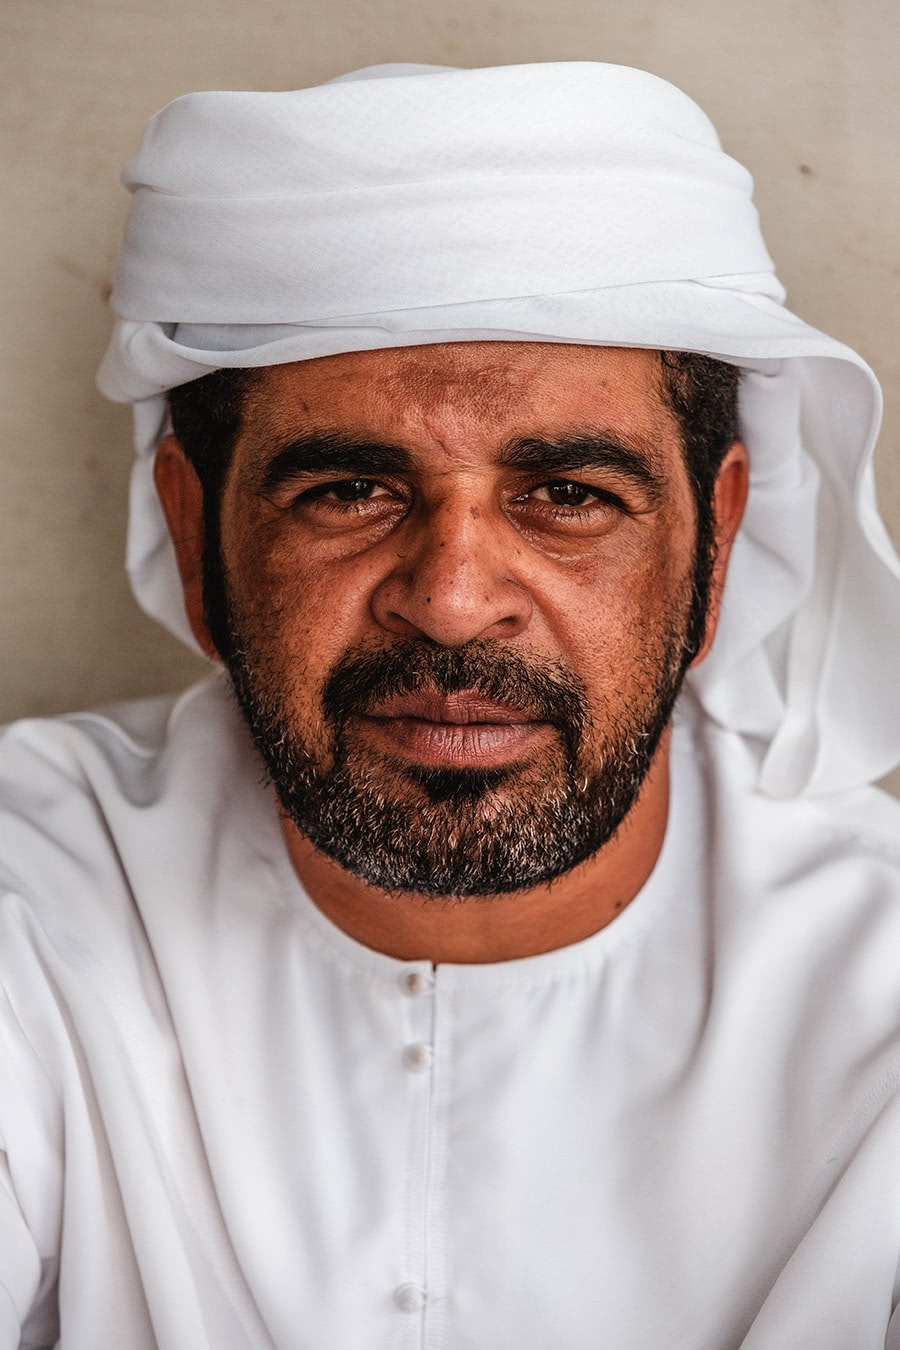 An Emirati man in Sharjah, UAE.